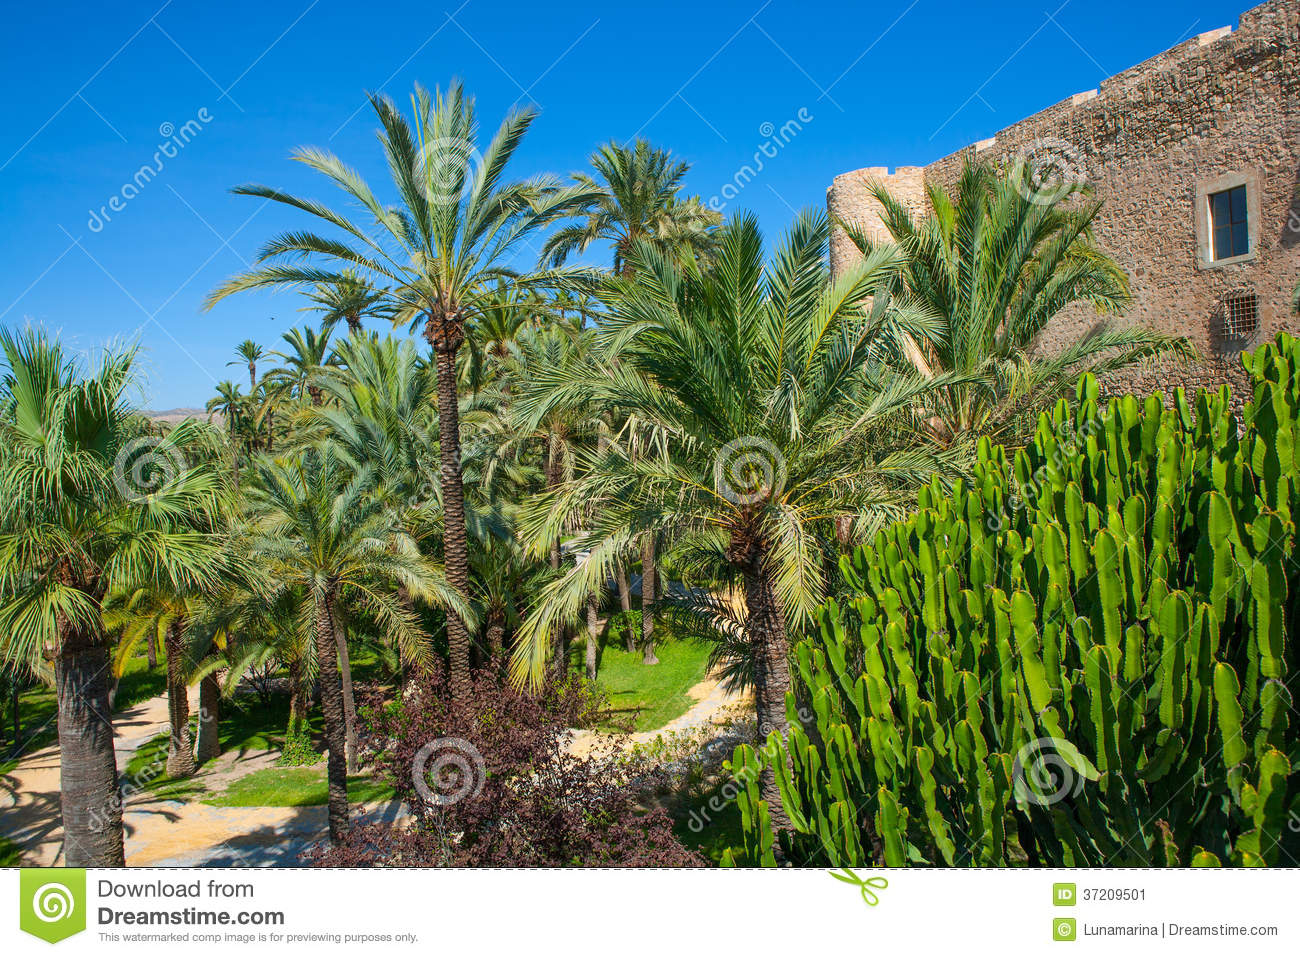 Elche Elx Alicante El Palmeral Palm Trees Park And Altamira Pala ...